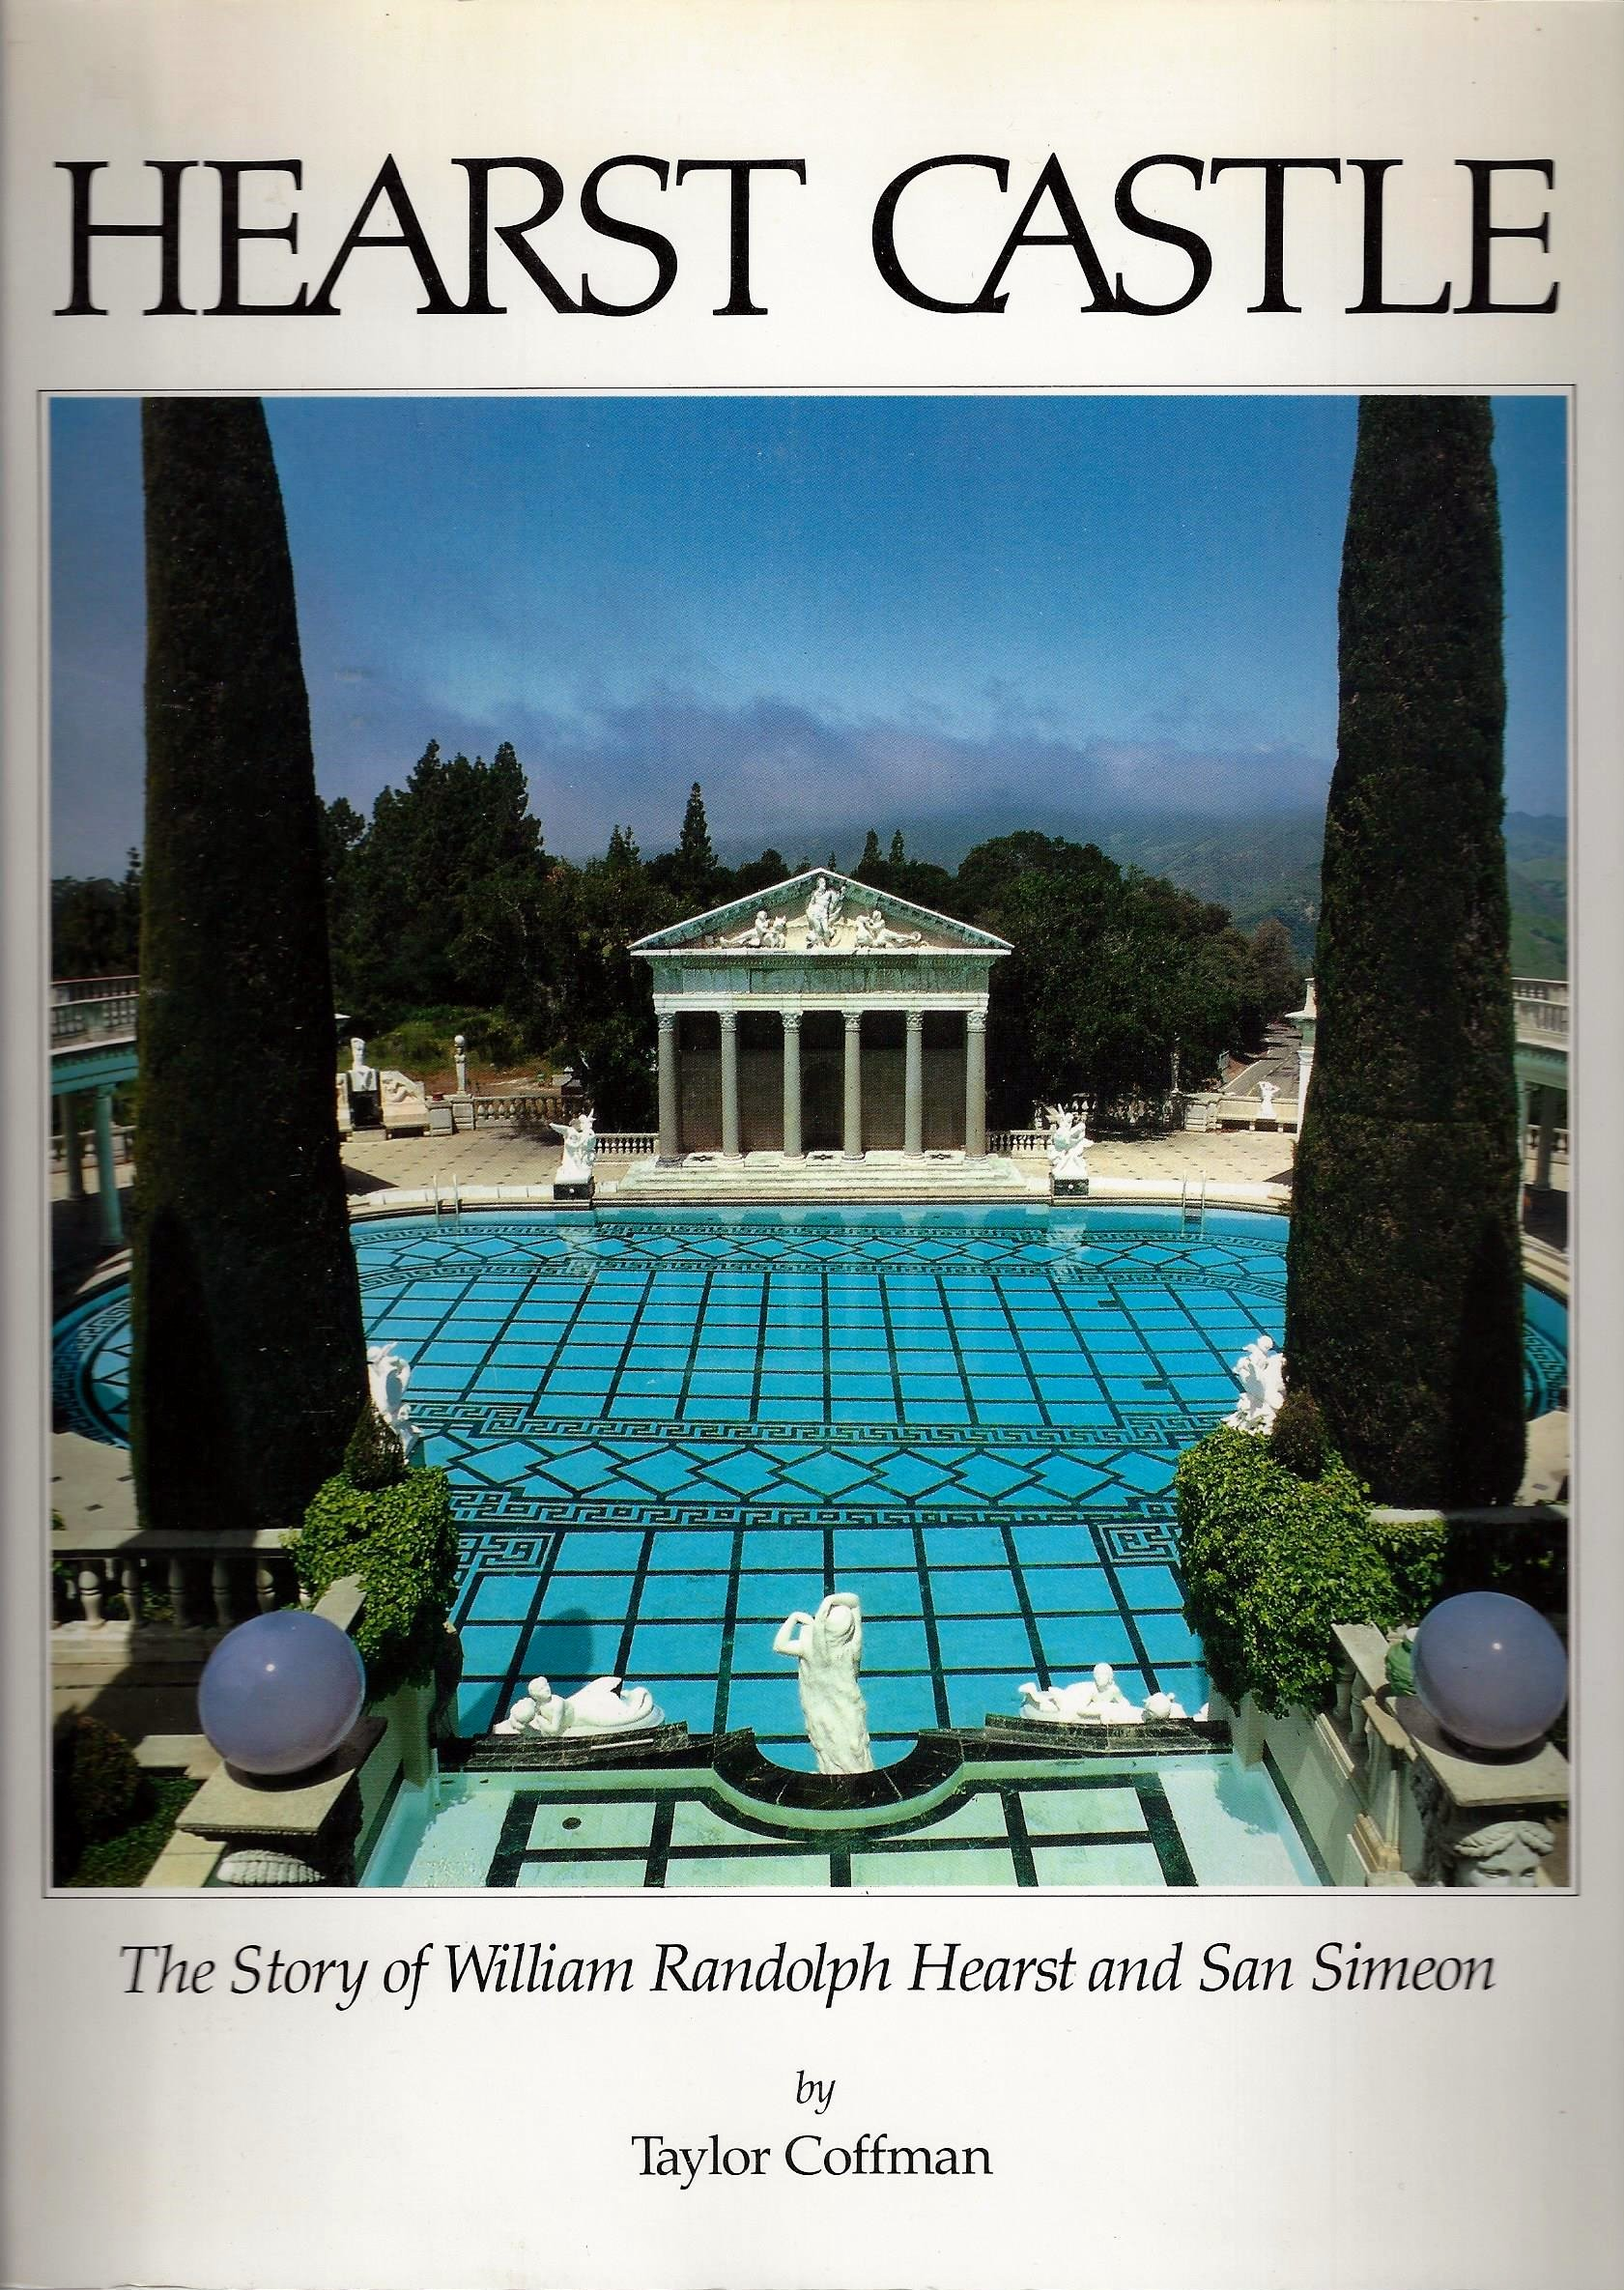 Hearst Castle: The Story of William Randolph Hearst and Simeon: Taylor  Coffman: 9780866790178: Amazon.com: Books